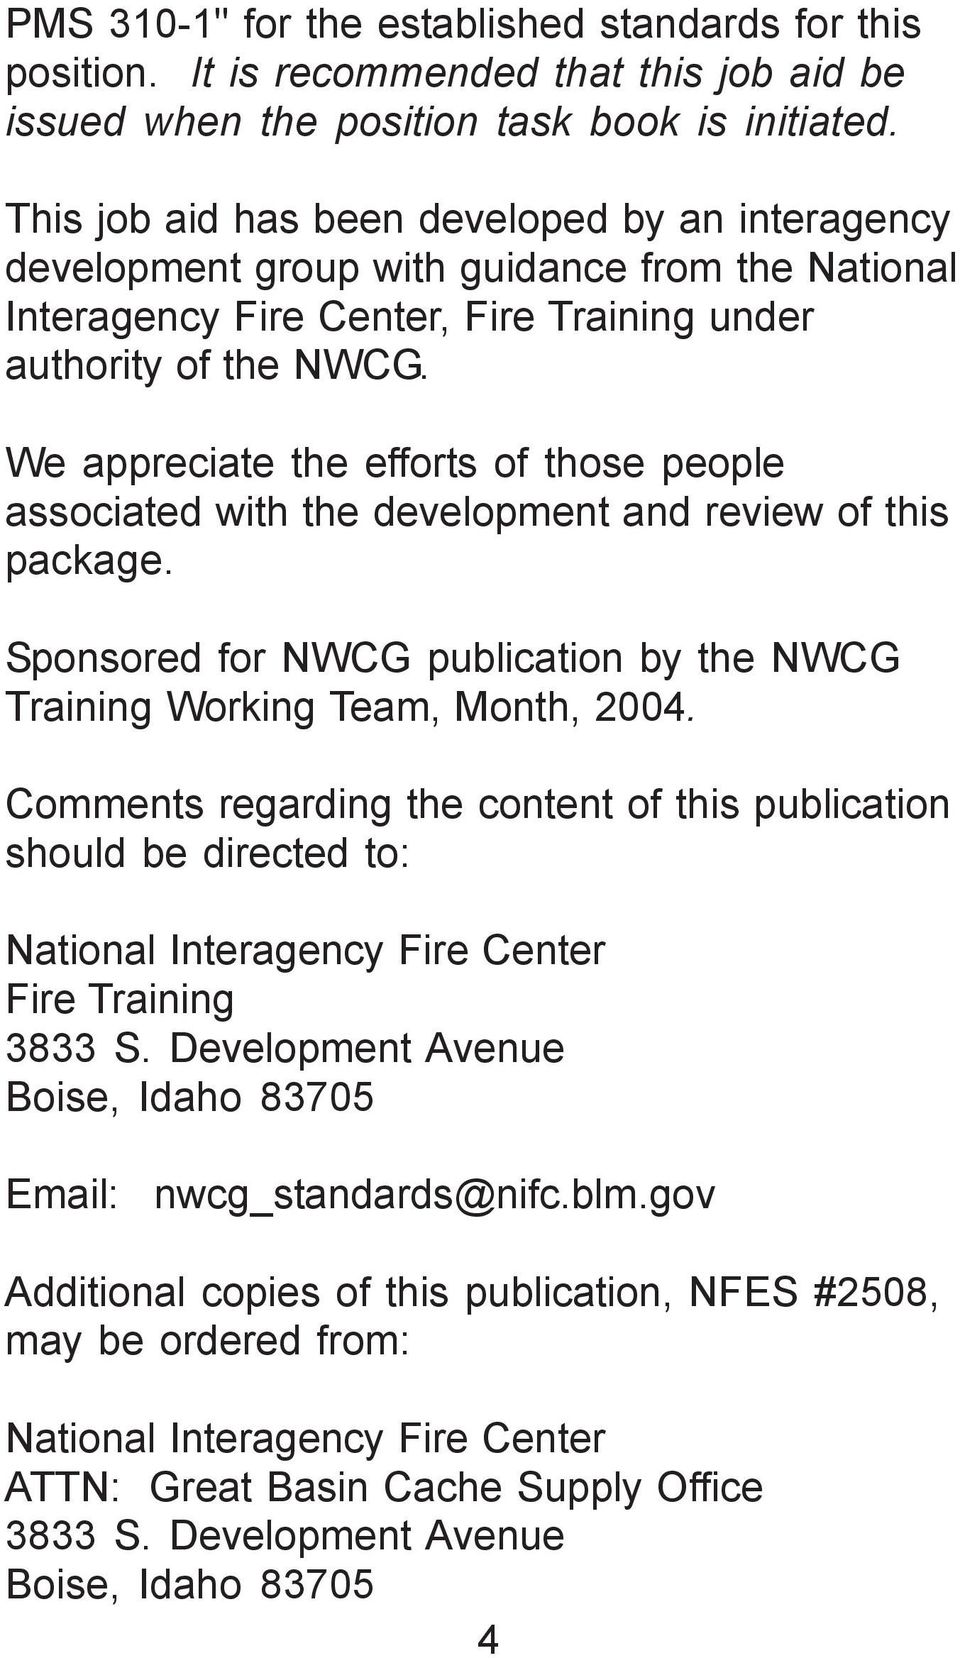 We appreciate the efforts of those people associated with the development and review of this package. Sponsored for NWCG publication by the NWCG Training Working Team, Month, 2004.